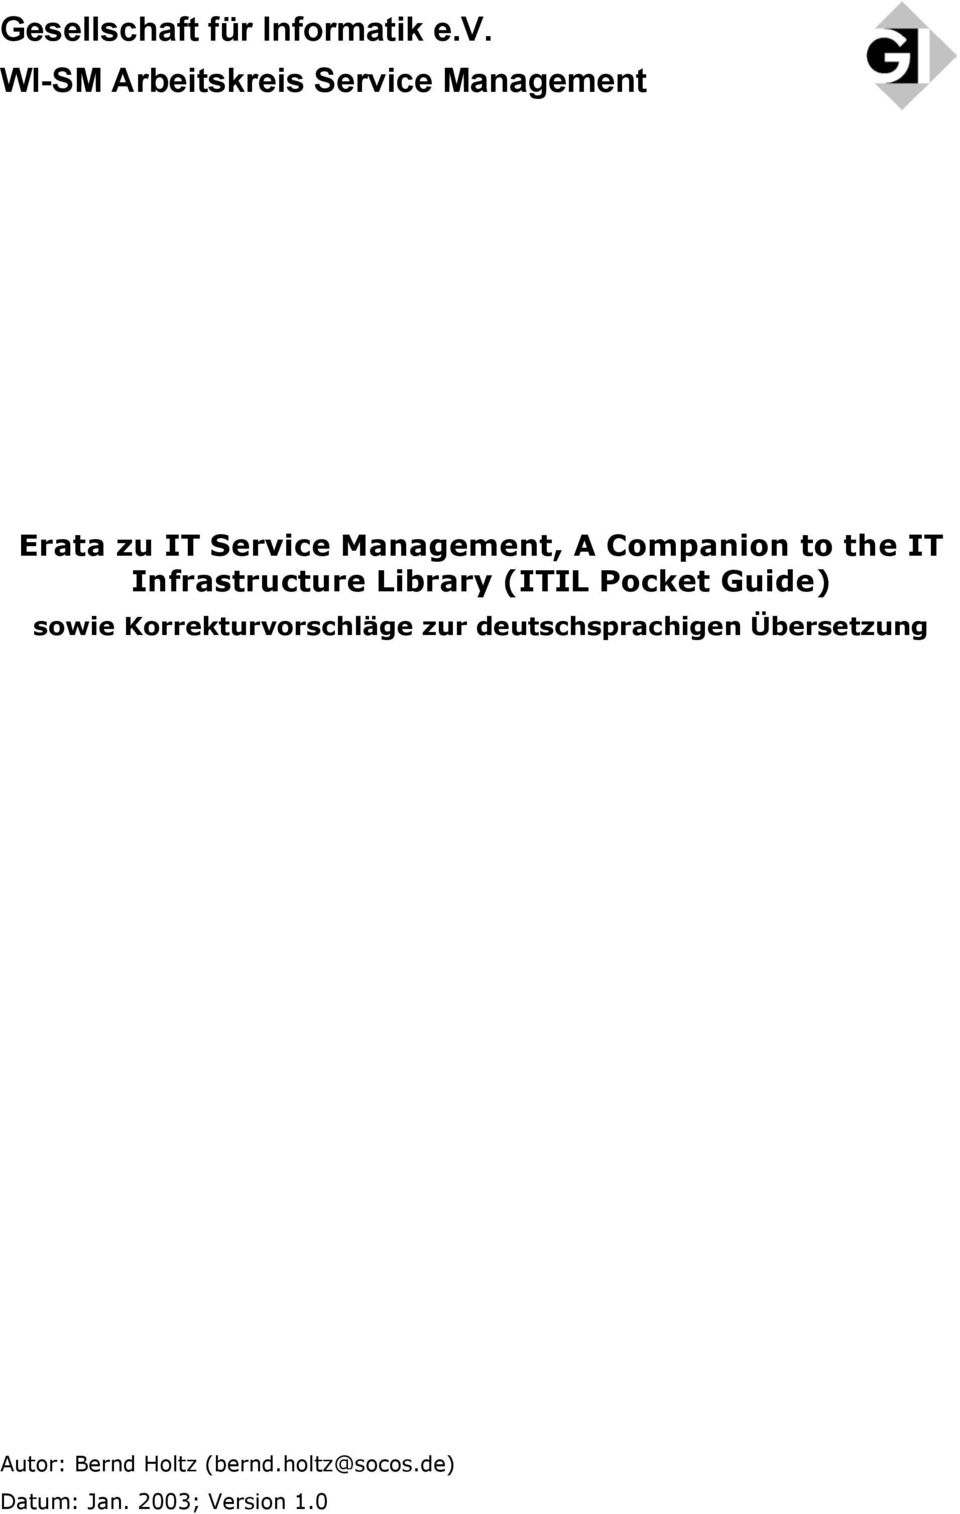 Management, A Companion to the IT Infrastructure Library (ITIL